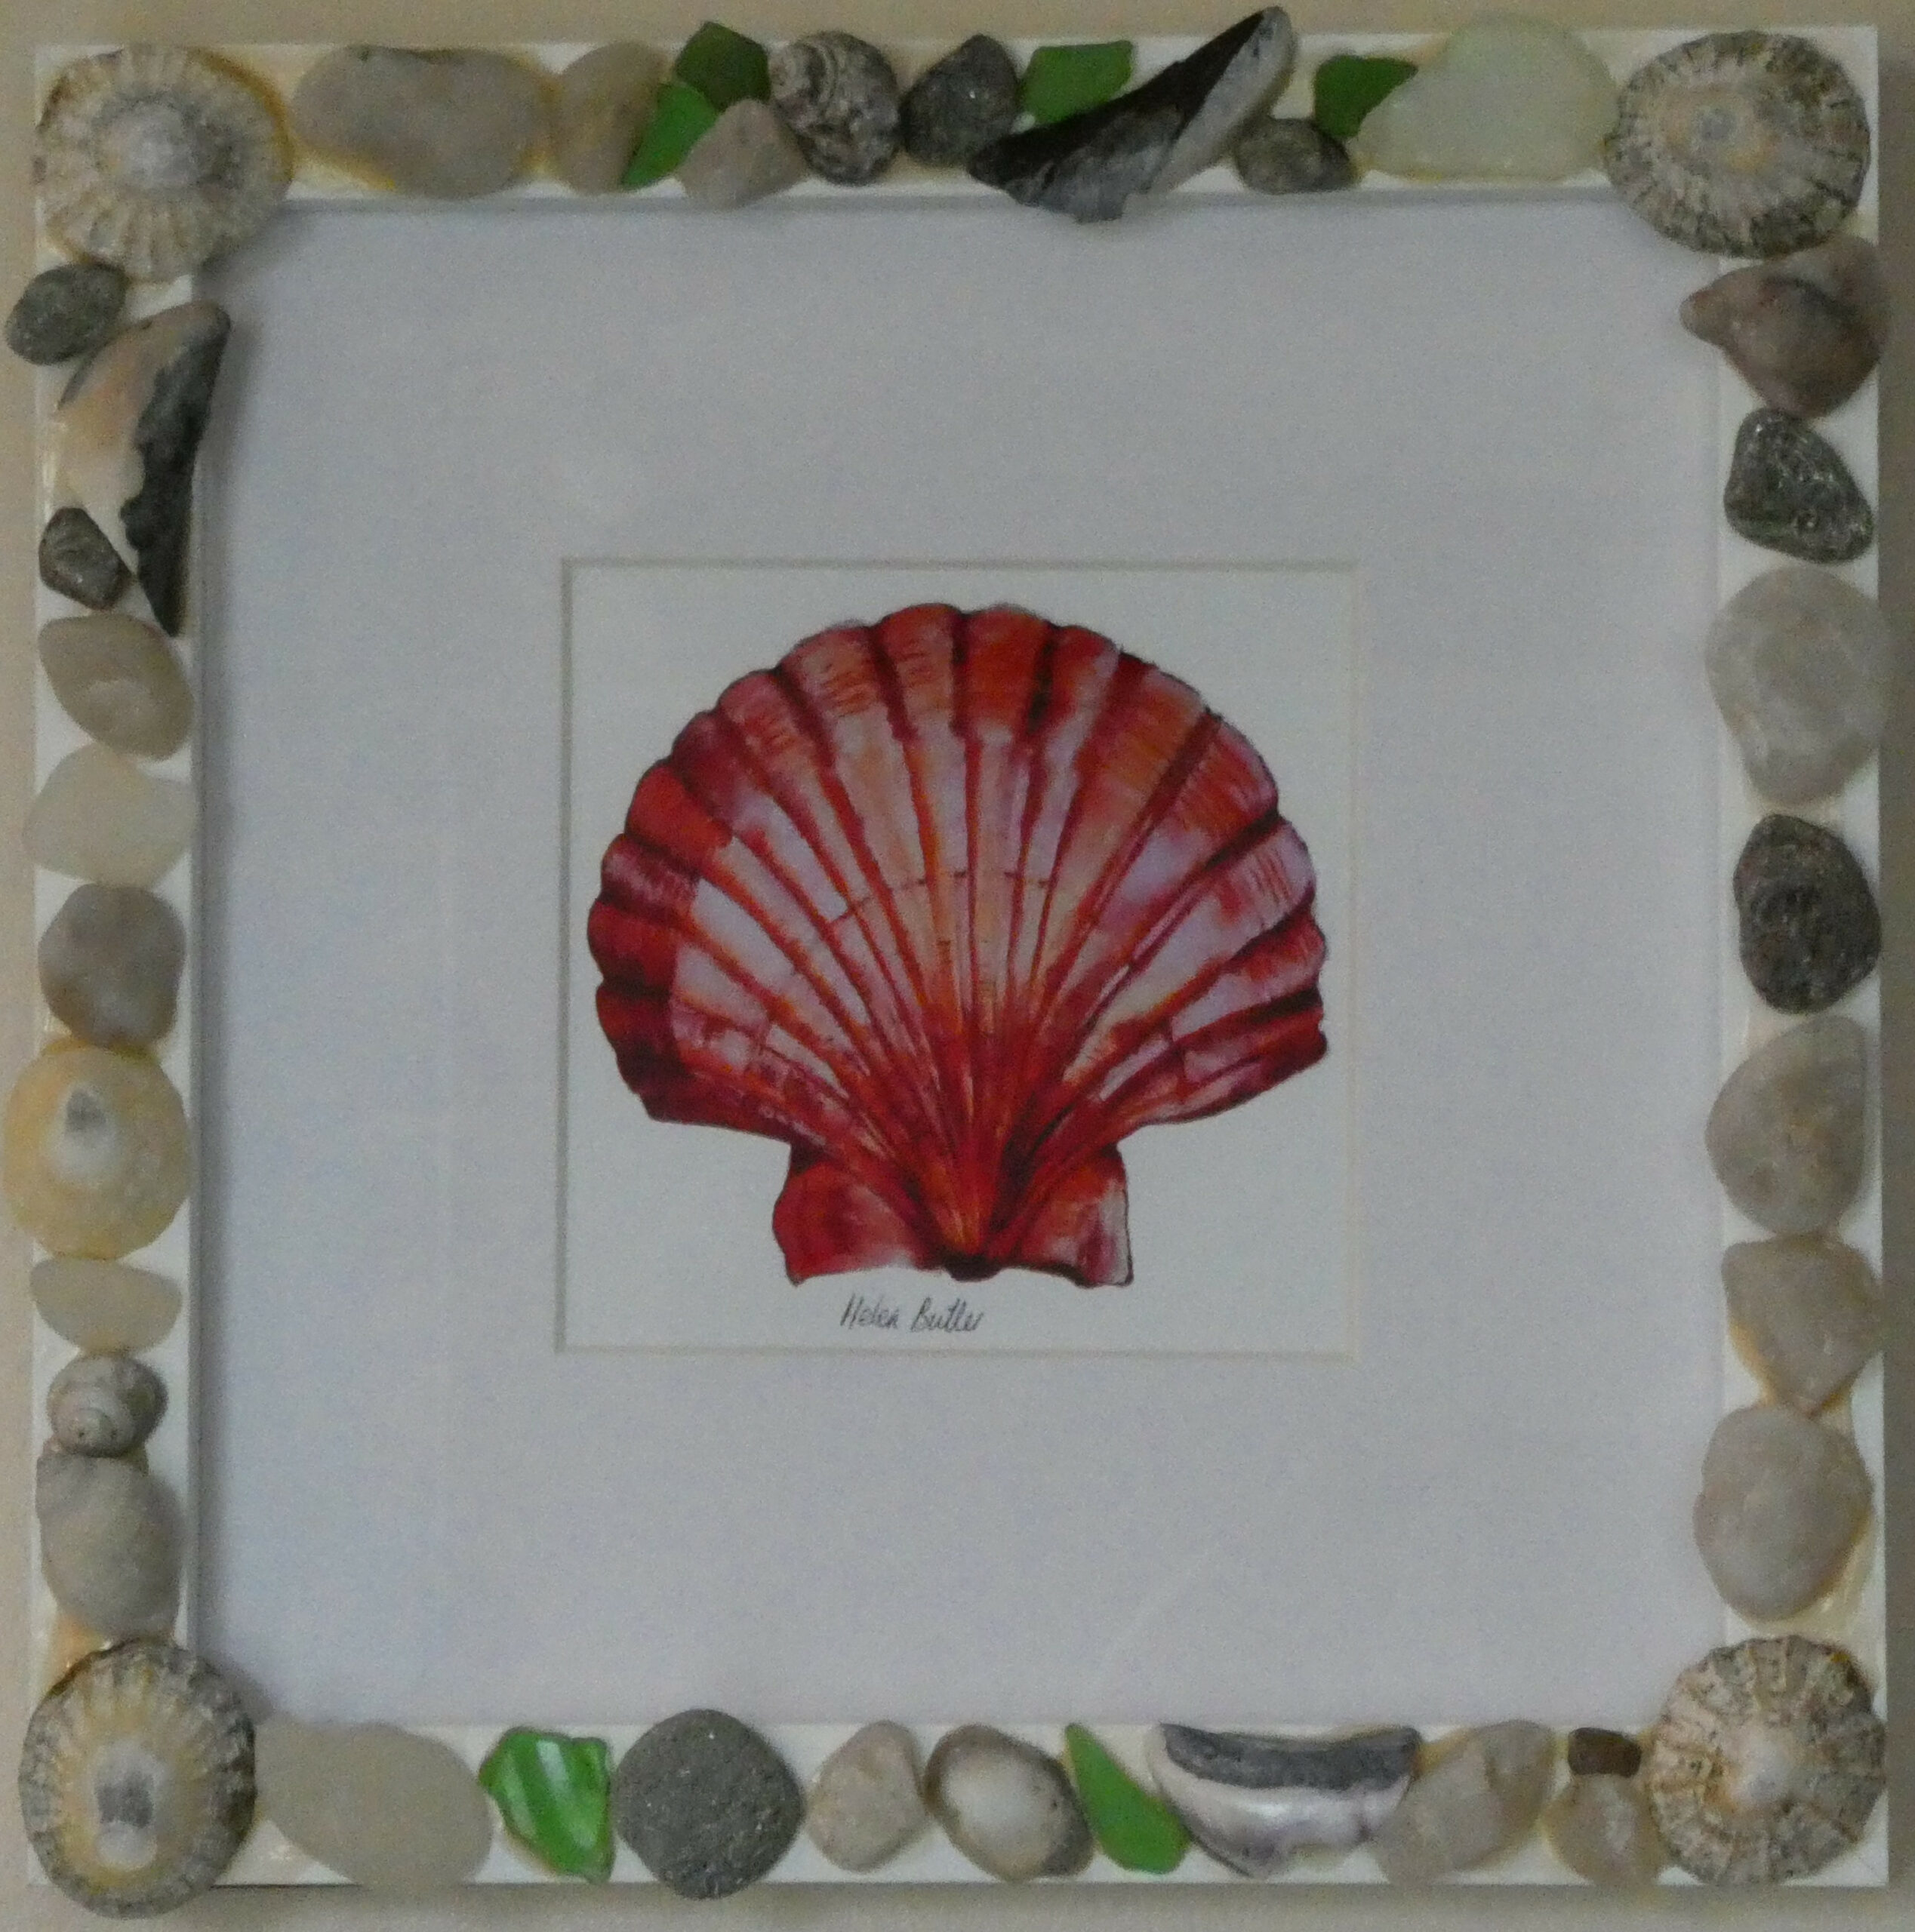 Scallop shell in sea glass and shell frame